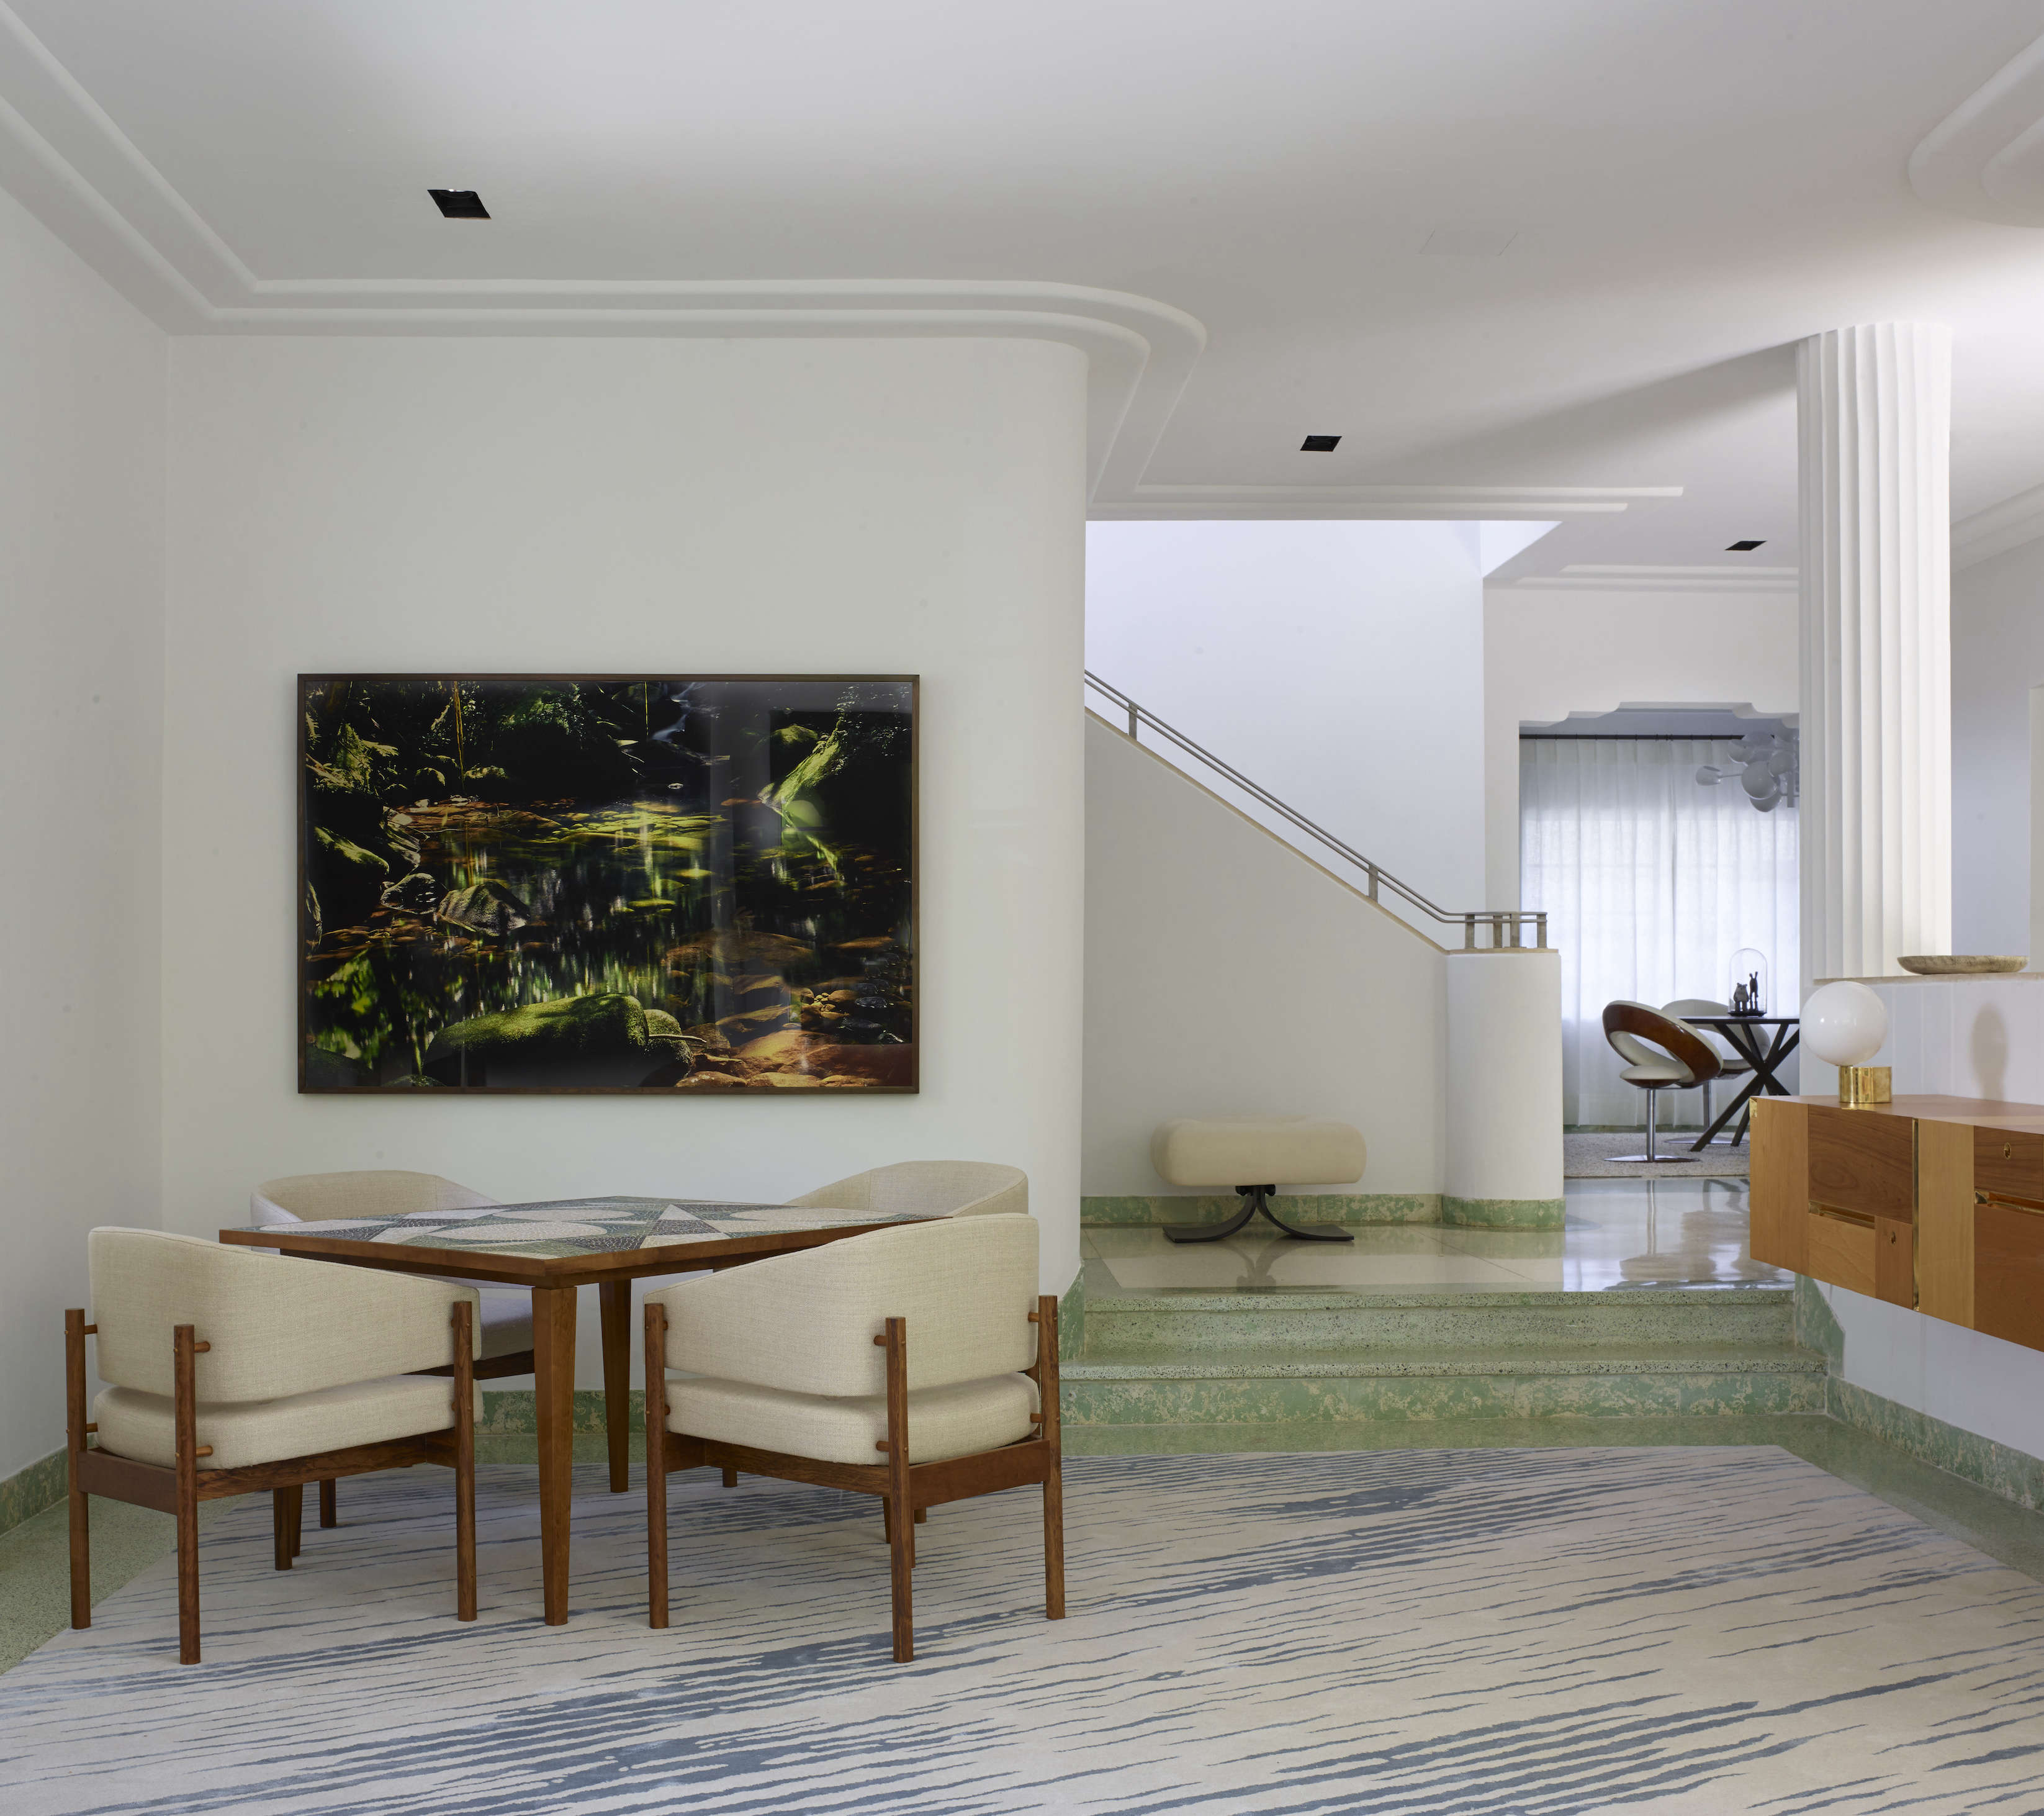 Exceptional Abstract Wall Art For Living Room #6: Stephan-Weishaupt-Miami-house-Richard-Powers-photo-Remodelista-3.jpg